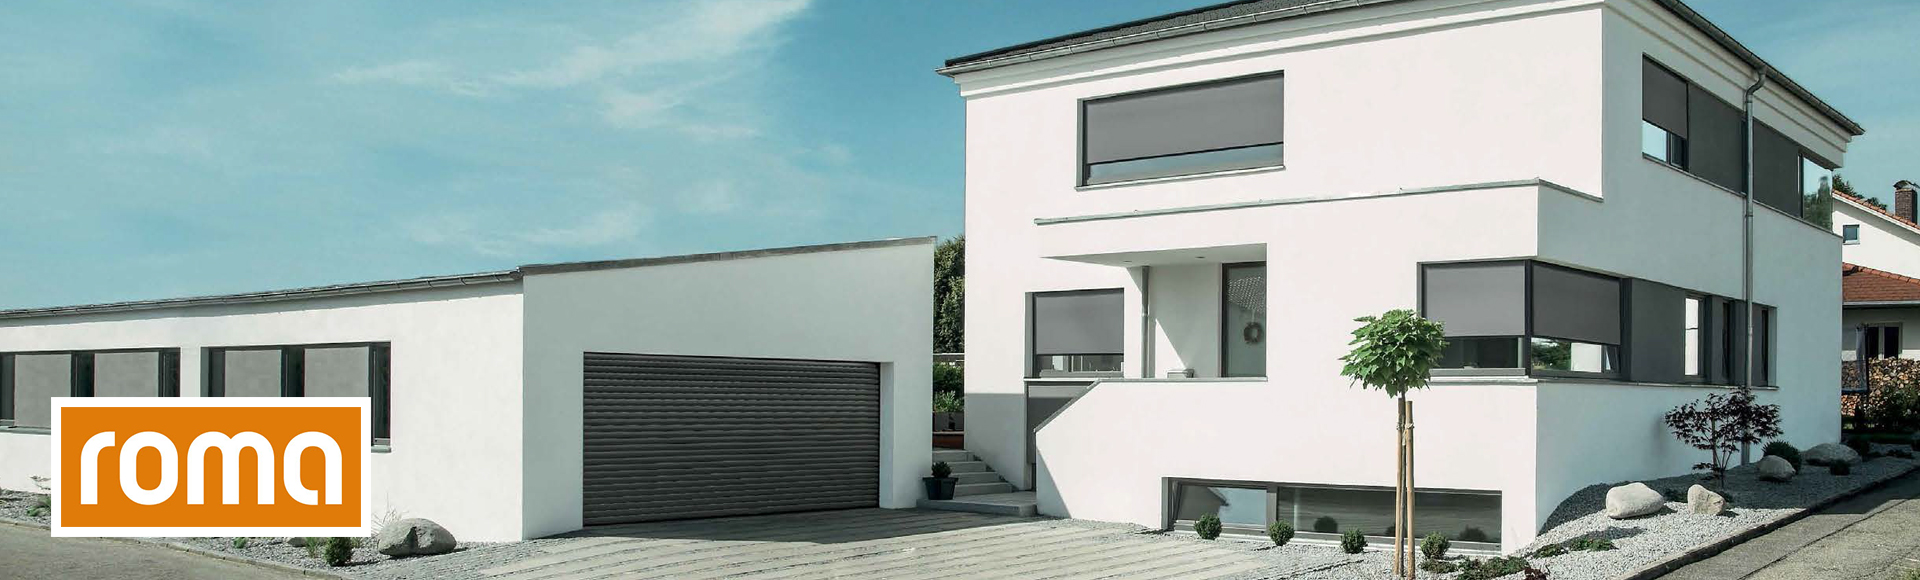 stunning residential facade featuring grey ROMA shading solutions.